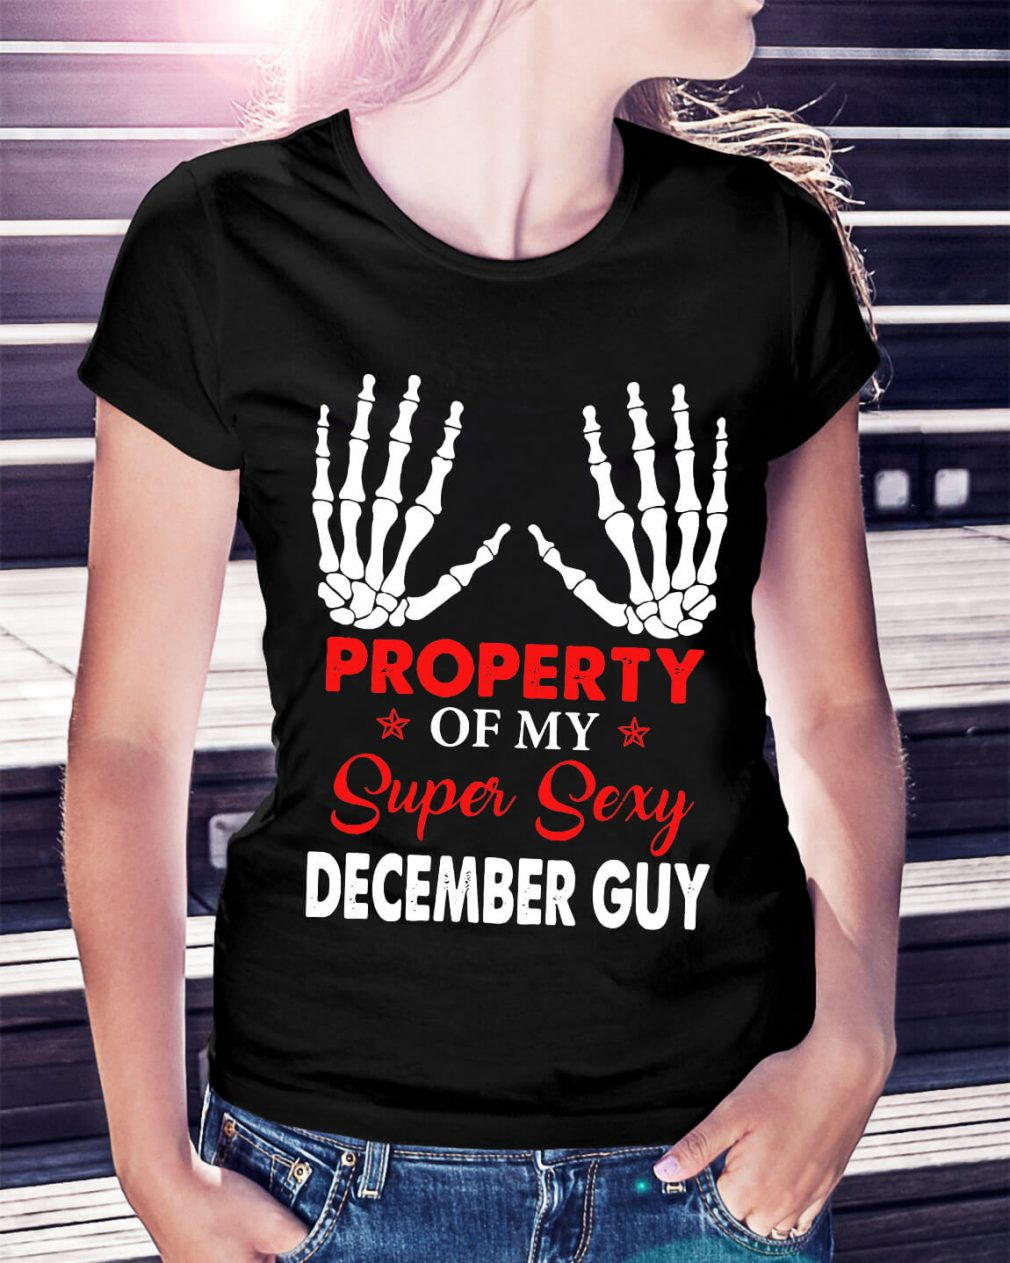 Property of my super sexy December guy shirt